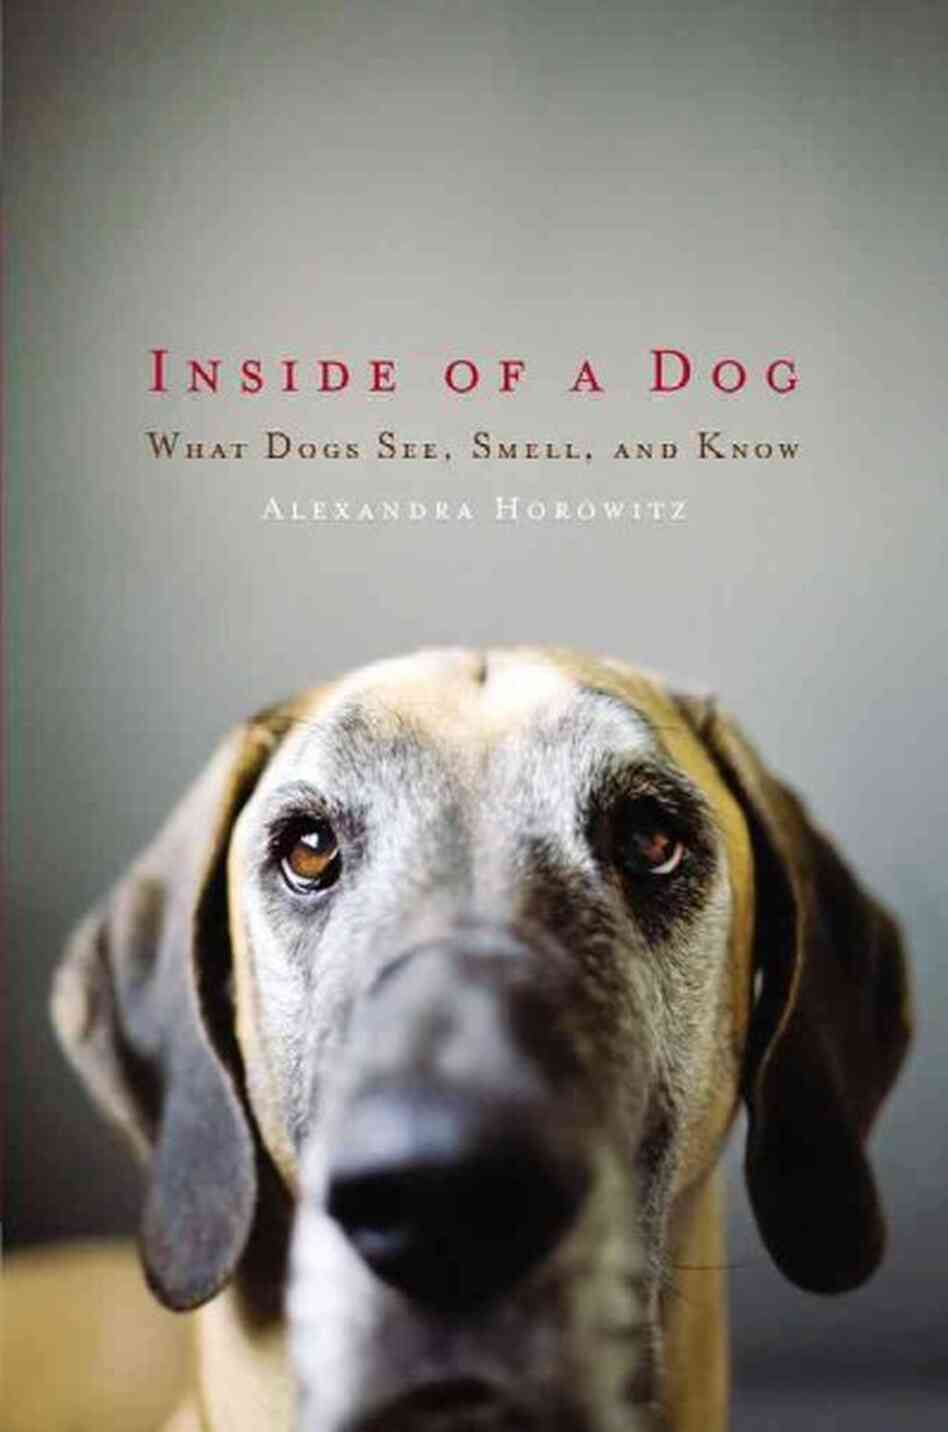 Inside of a Dog